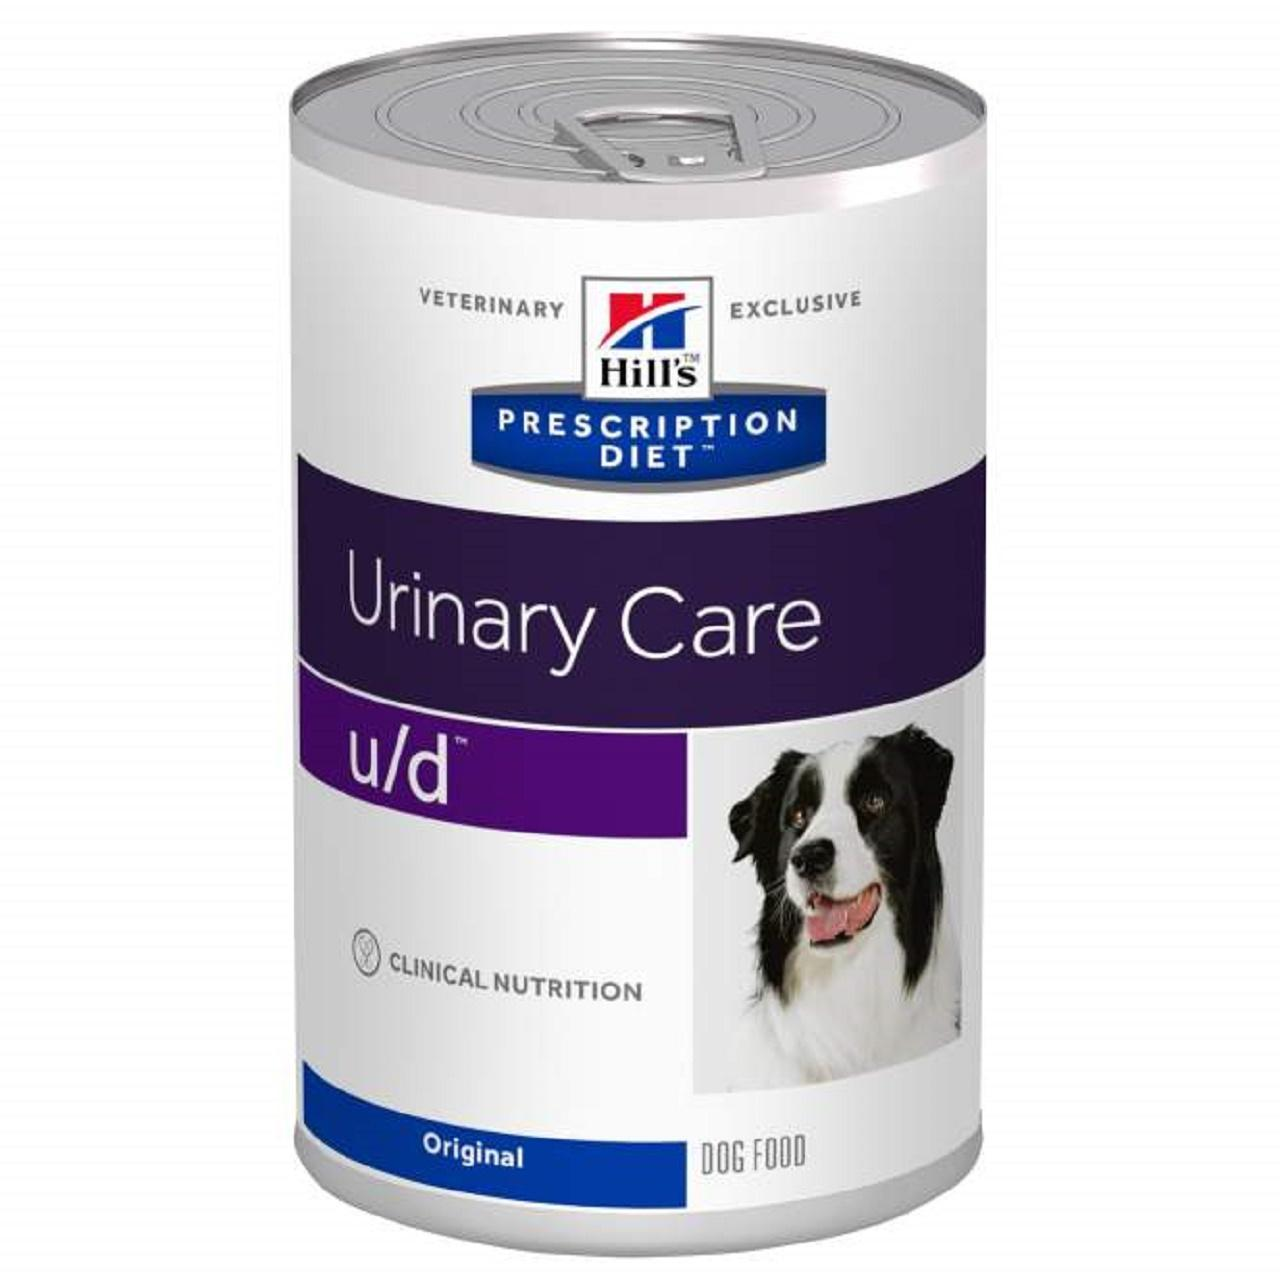 Urinary Care Hunde U/d (12 X 370 G) Nassfutter Hill's Prescription Diet